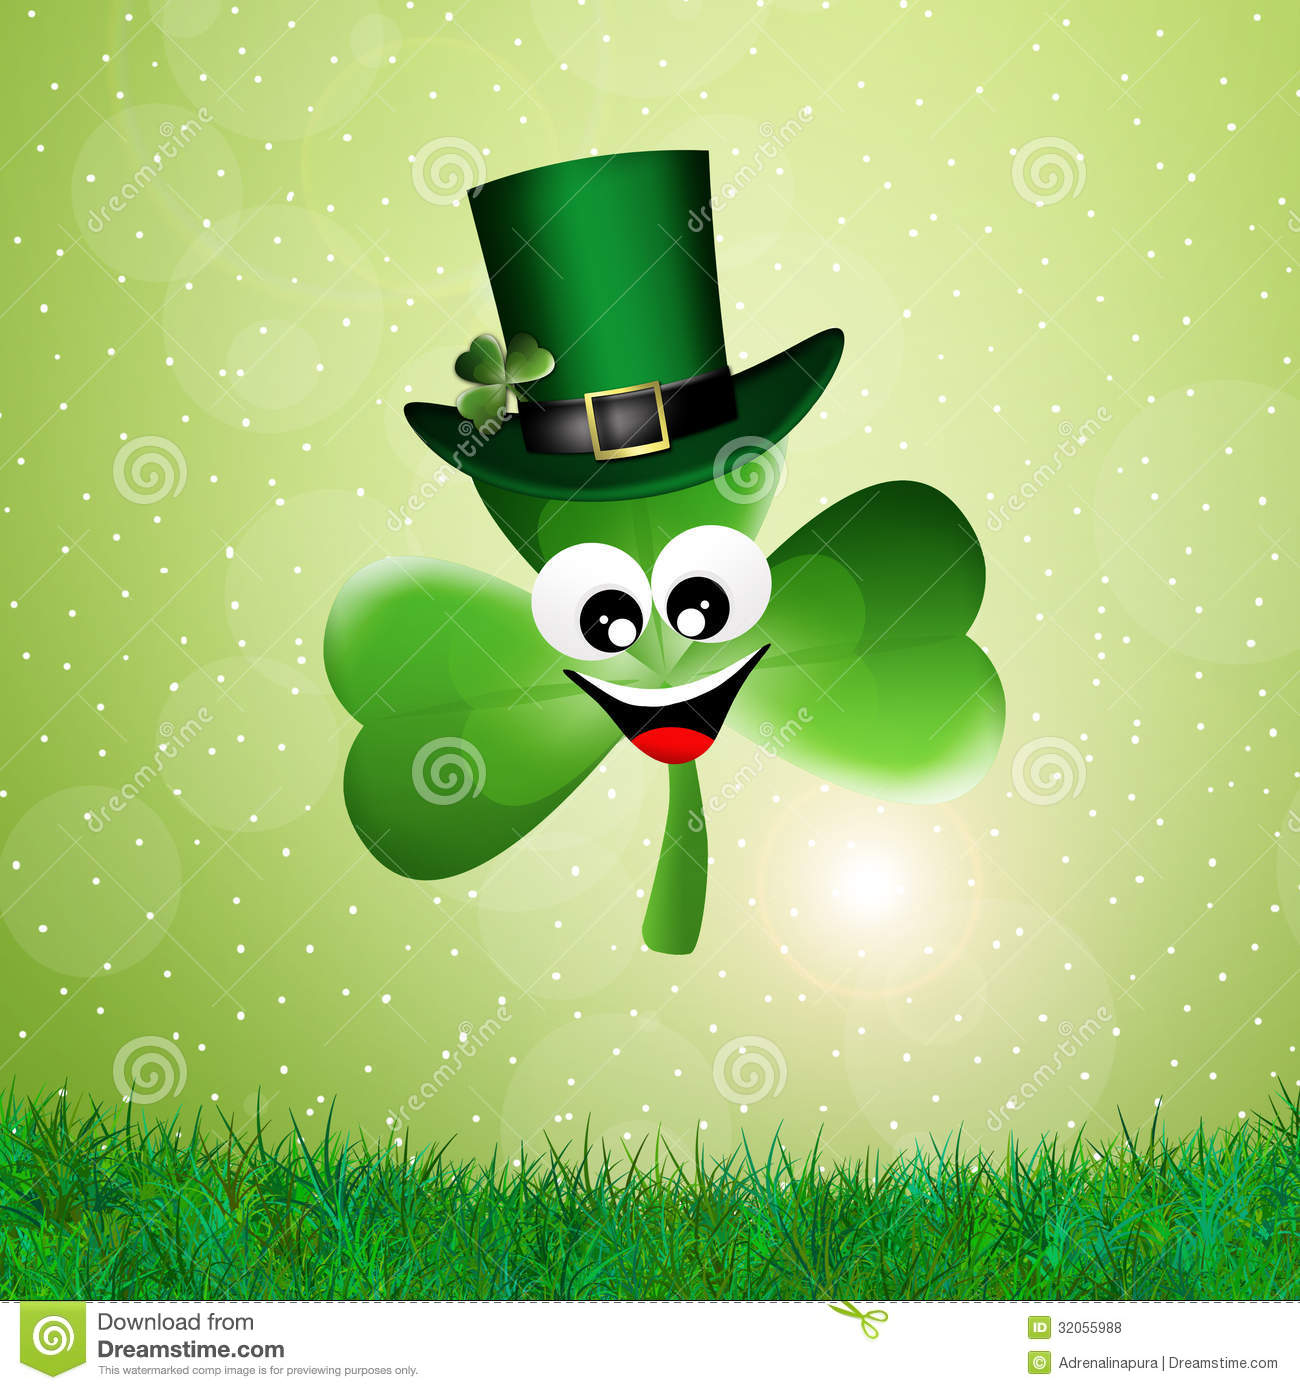 Cartoon Clover Royalty Free Stock Photos - Image: 32055988